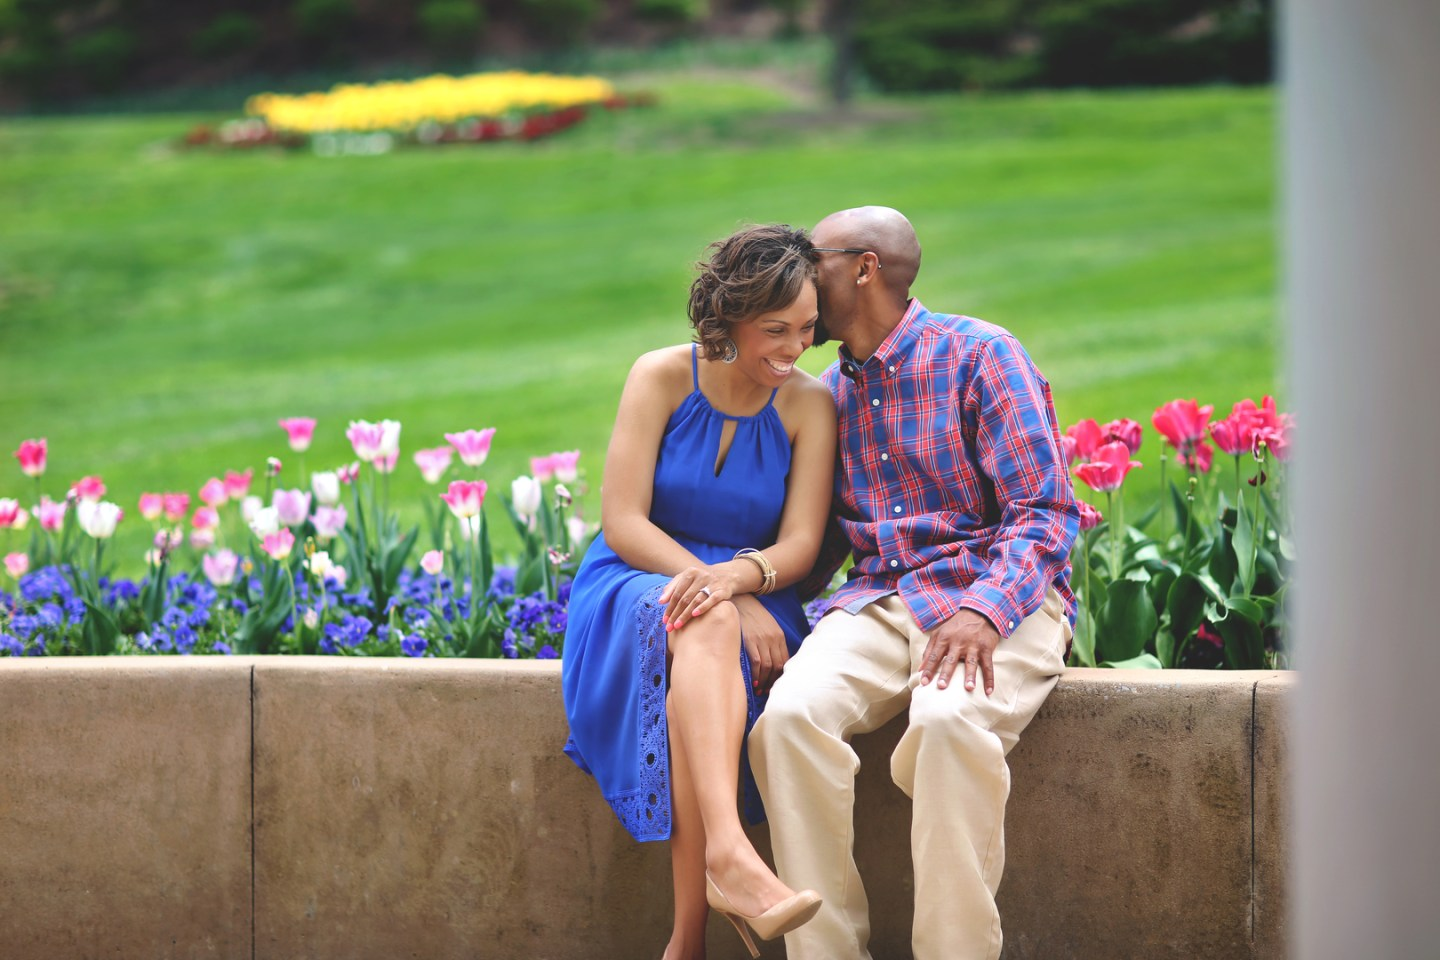 6ft1p11av5cxygq97a18_big West Virginia Engagement Session at the Greenbriar Resort